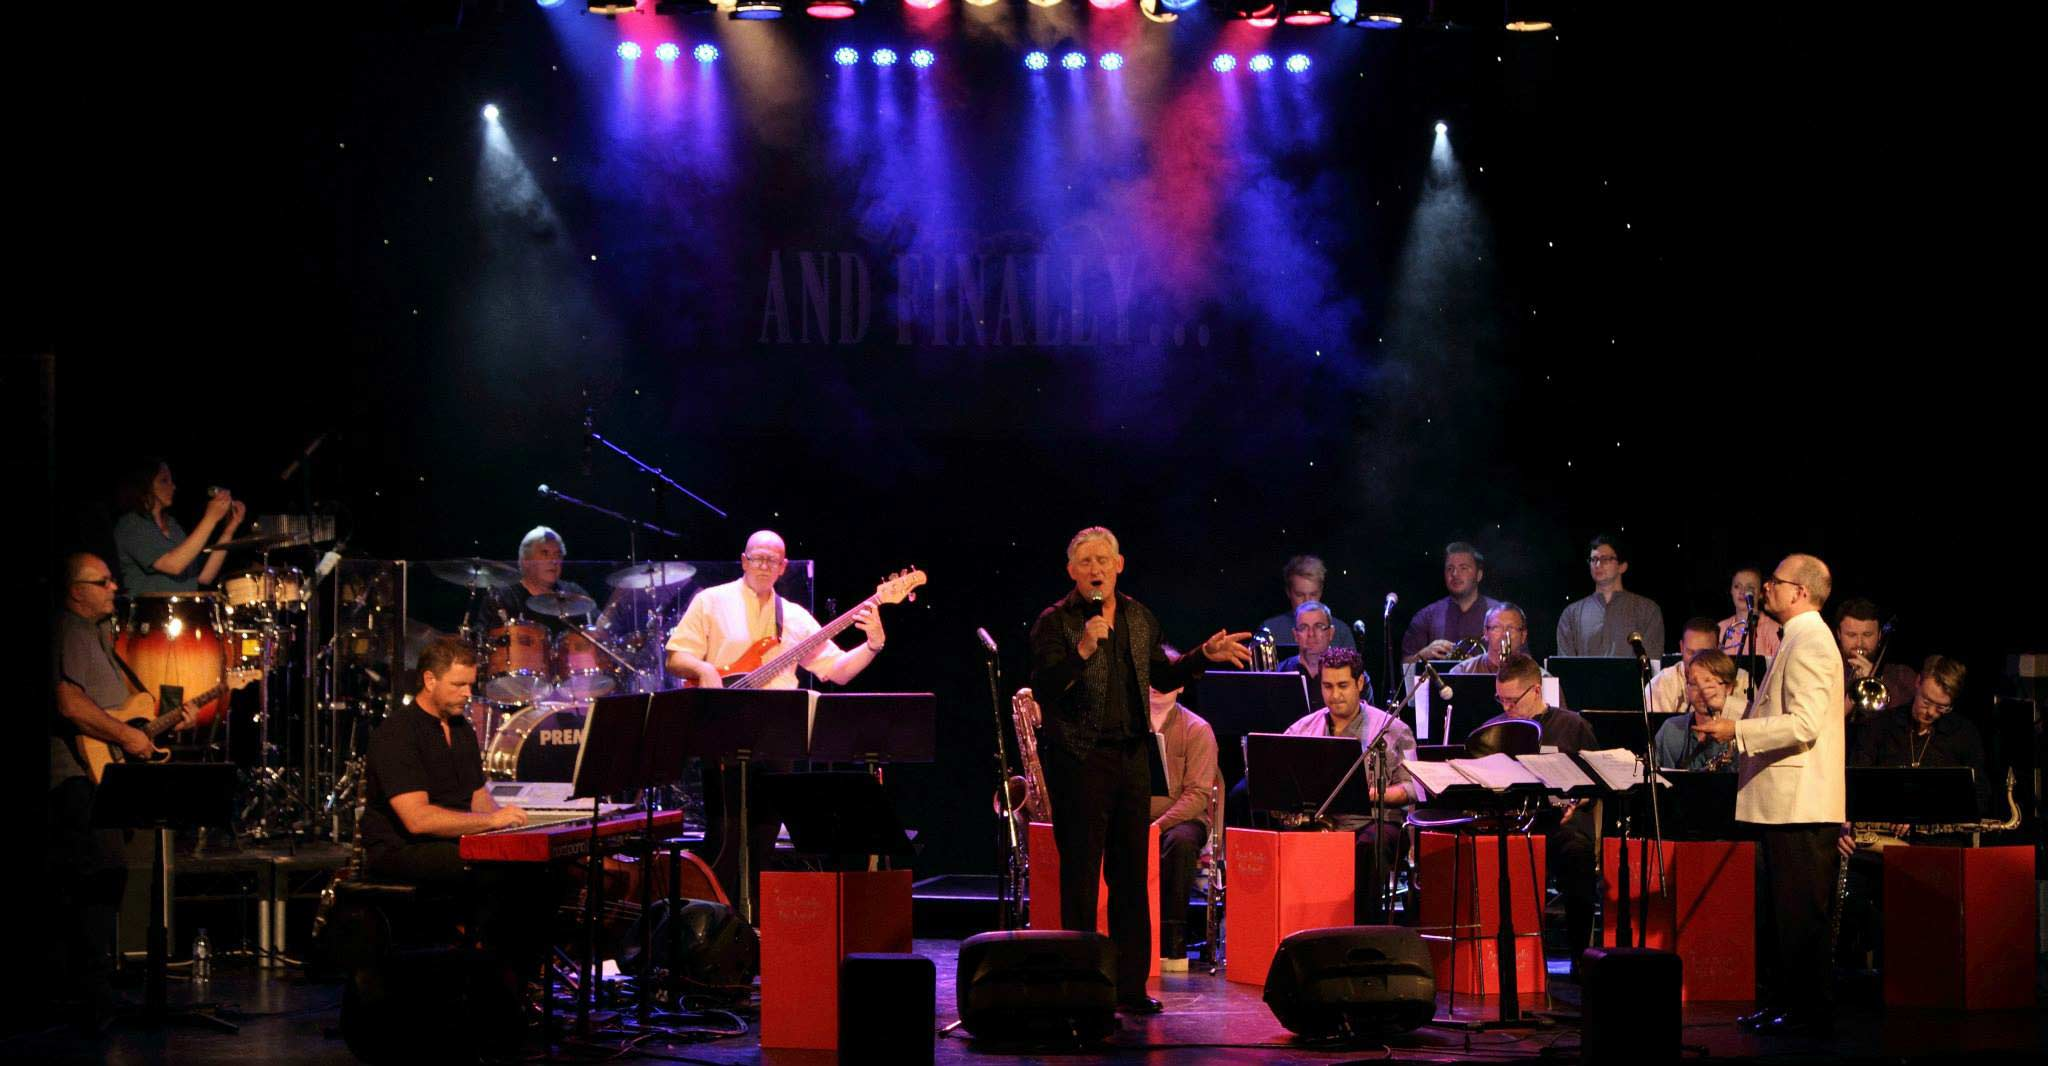 And-Finally-Big-Band-On-Stage-Tivoli